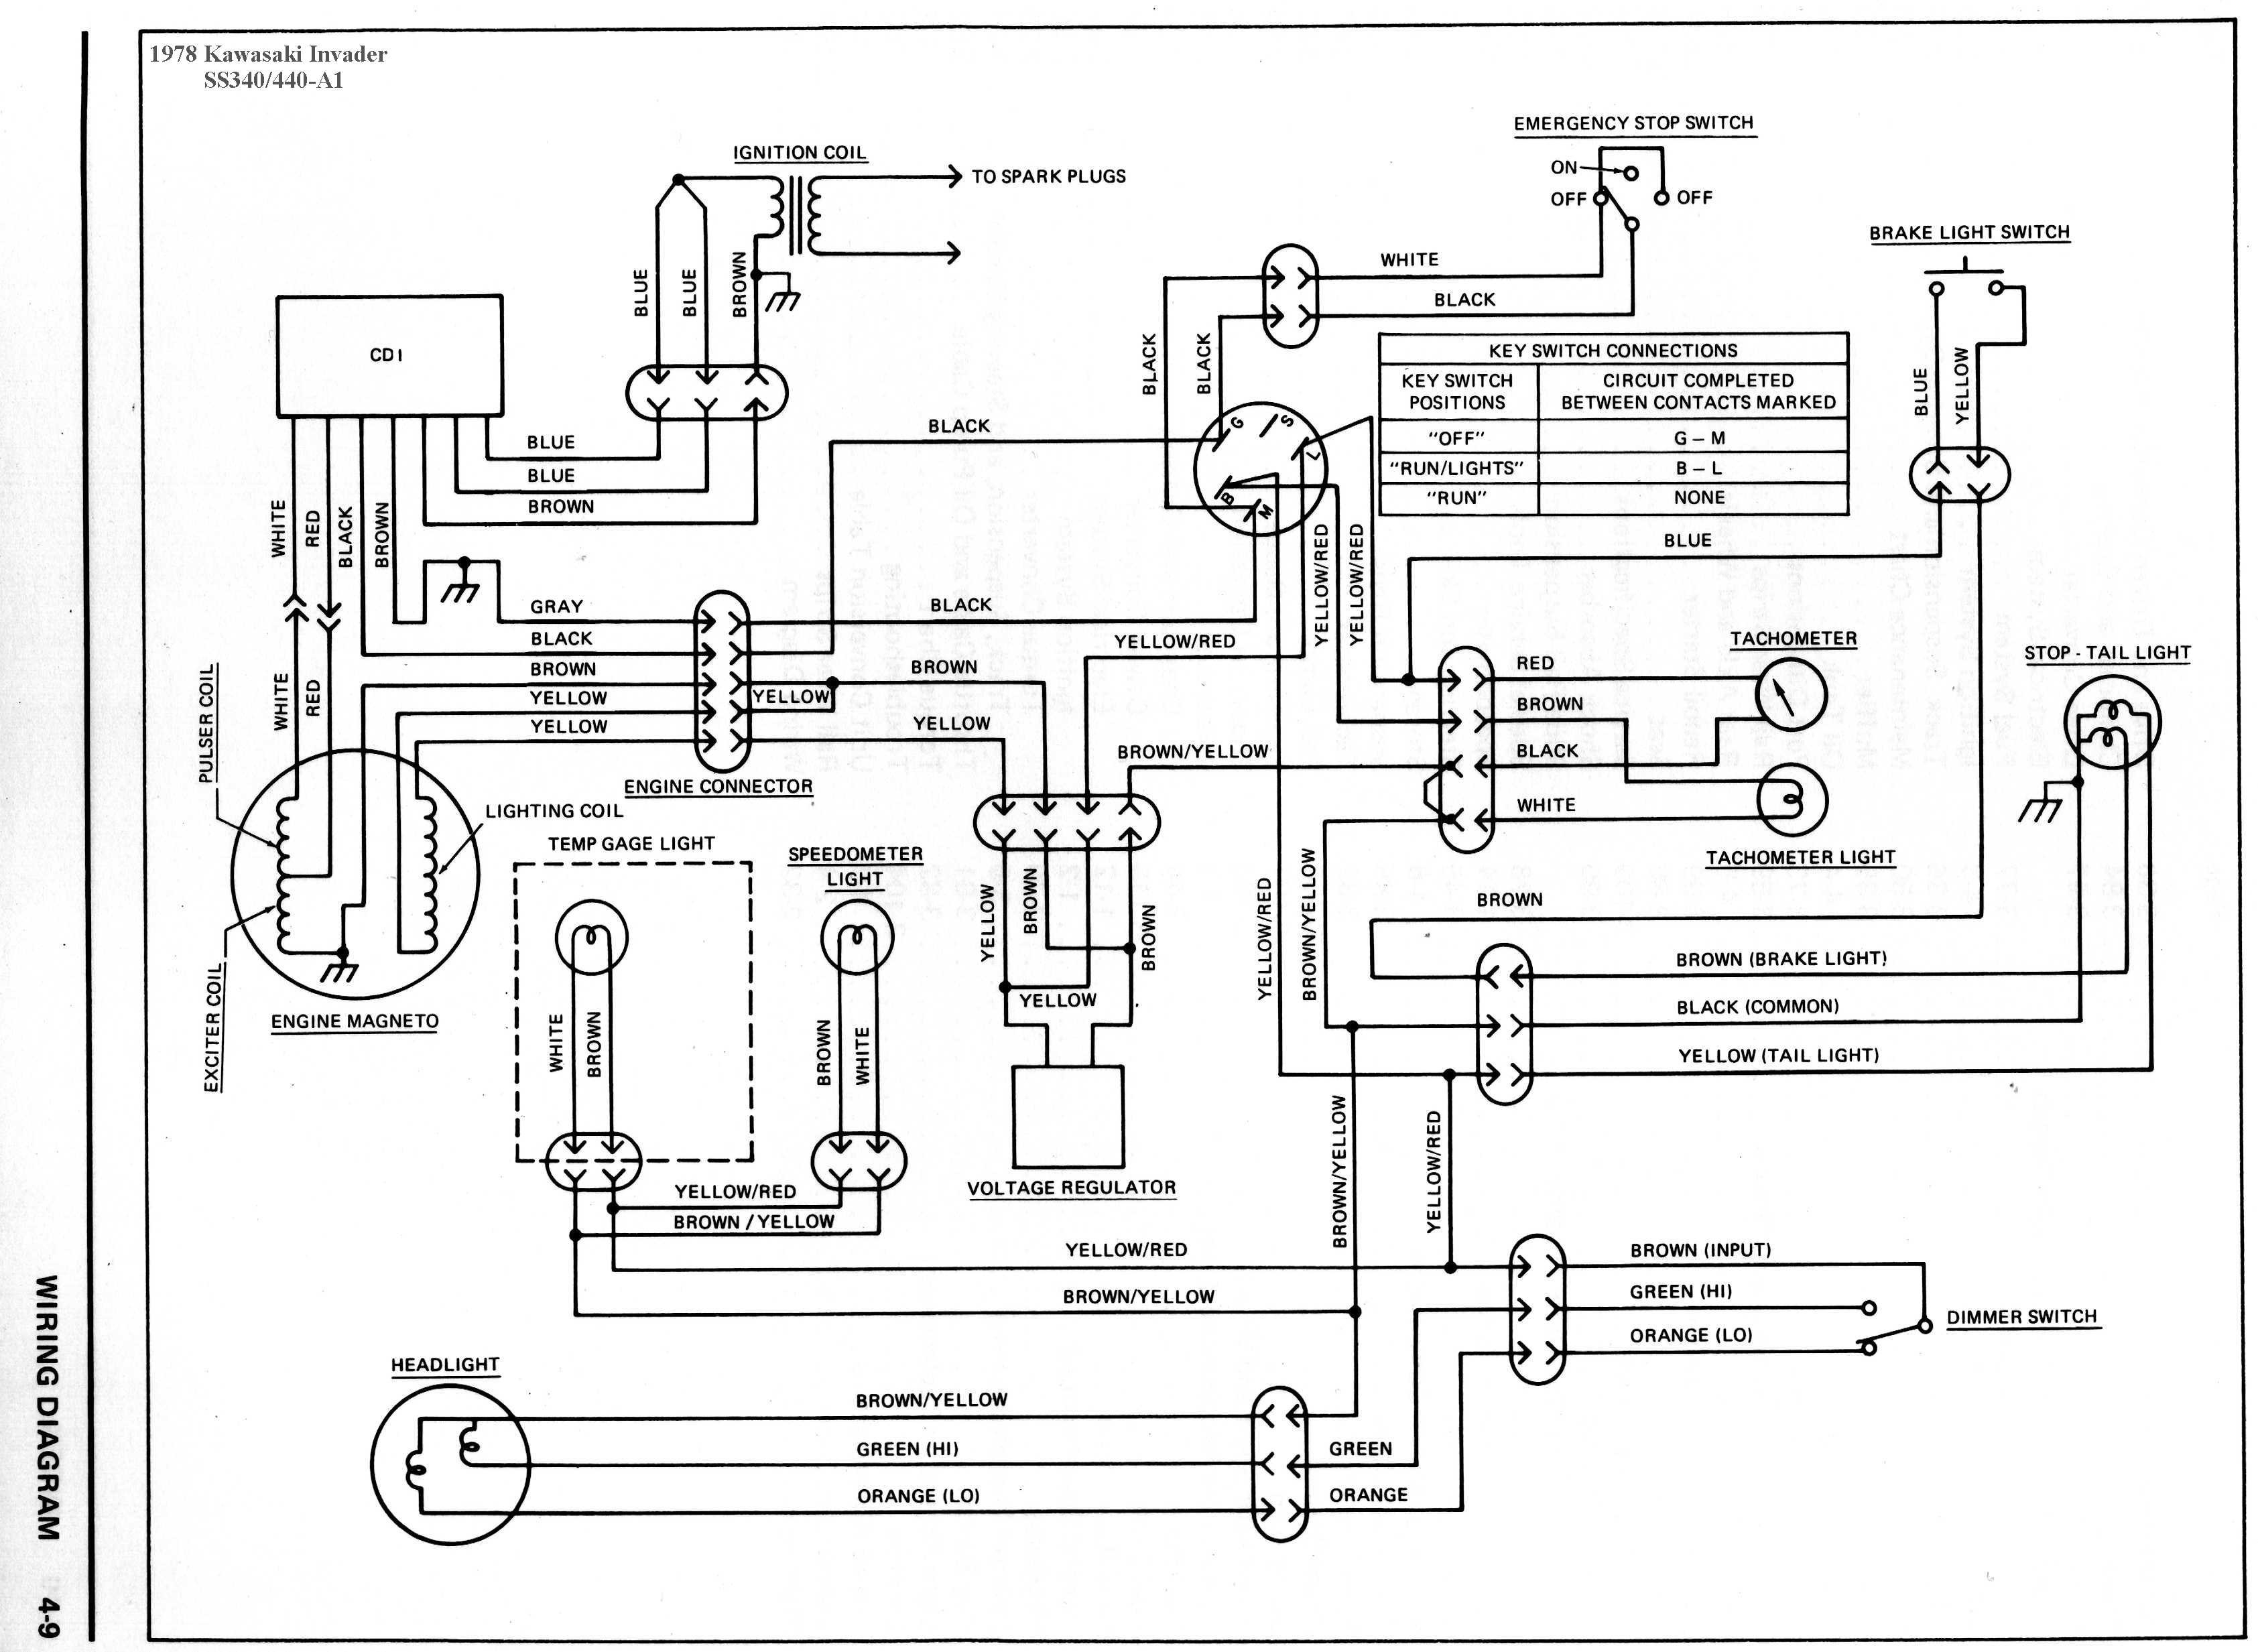 1998 Kawasaki Wiring Diagram - Fusebox and Wiring Diagram cable-suite -  cable-suite.parliamoneassieme.it | 1998 Kawasaki Prairie 400 Wiring Diagram |  | diagram database